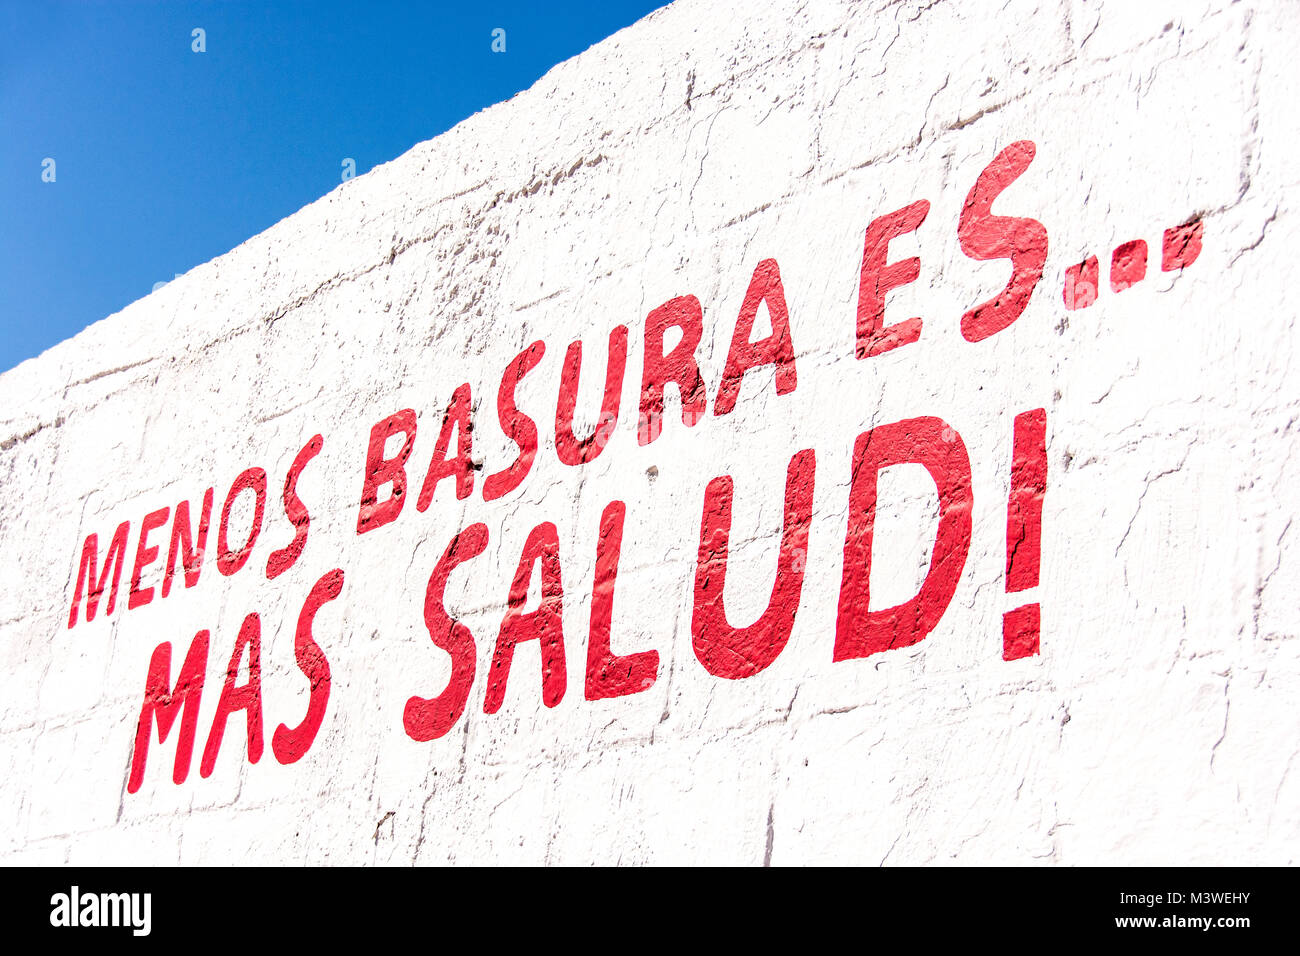 Menos Basura es Mas Salud, which translates to 'Less Trash is Better Health.' - Stock Image